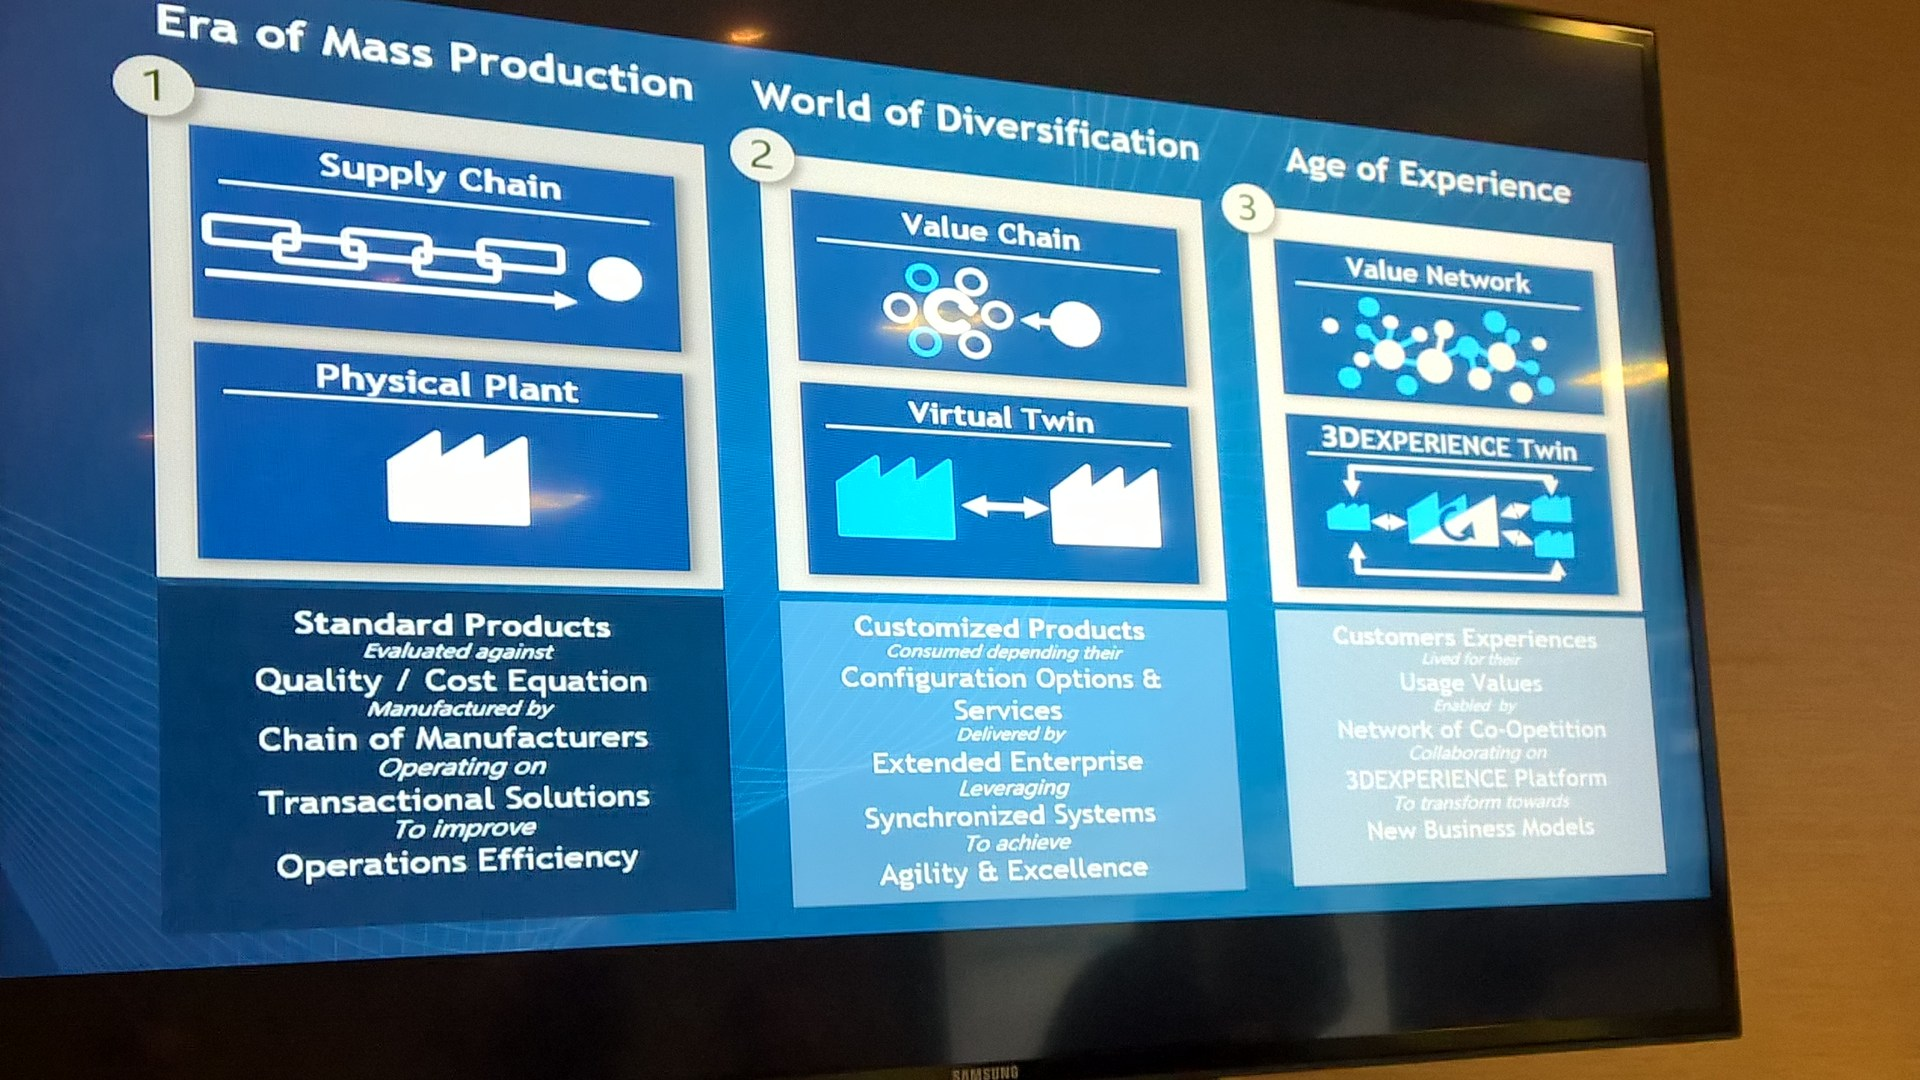 Dassault Systèmes' vision for how manufacturing is evolving